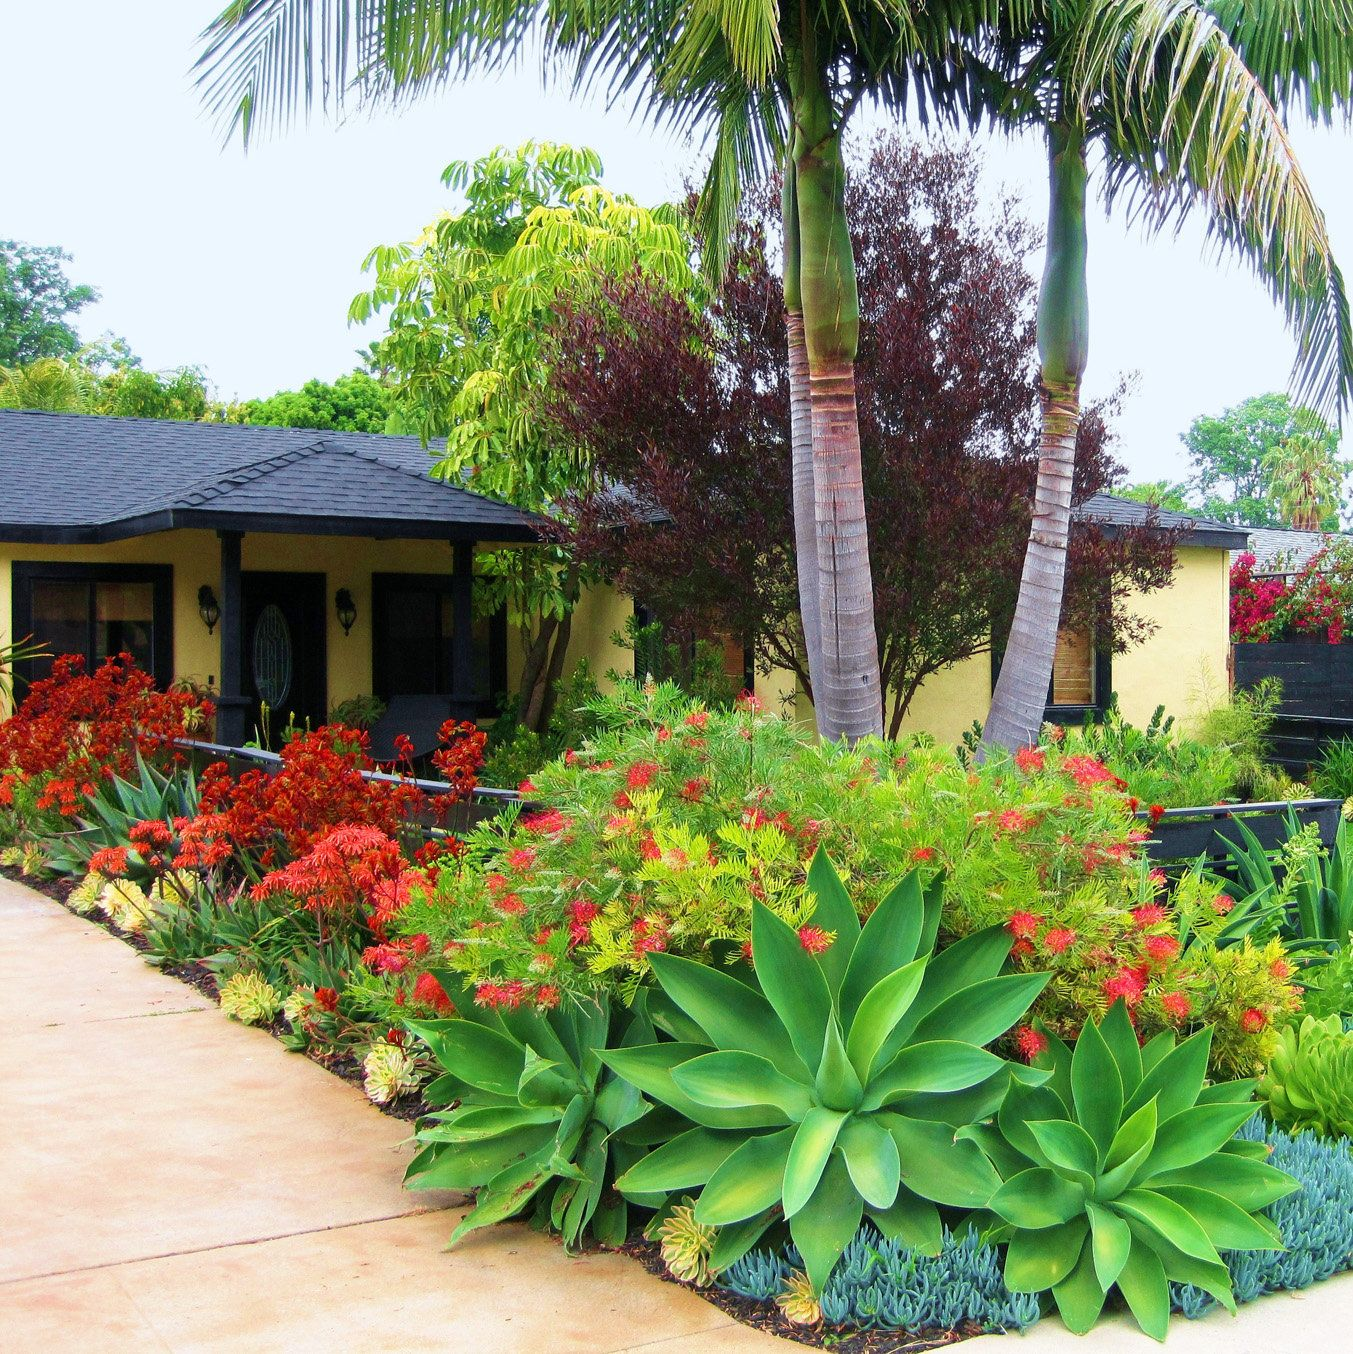 Creative front-yard makeovers | Southern landscaping ... on Tropical Landscaping Ideas For Small Yards id=59251